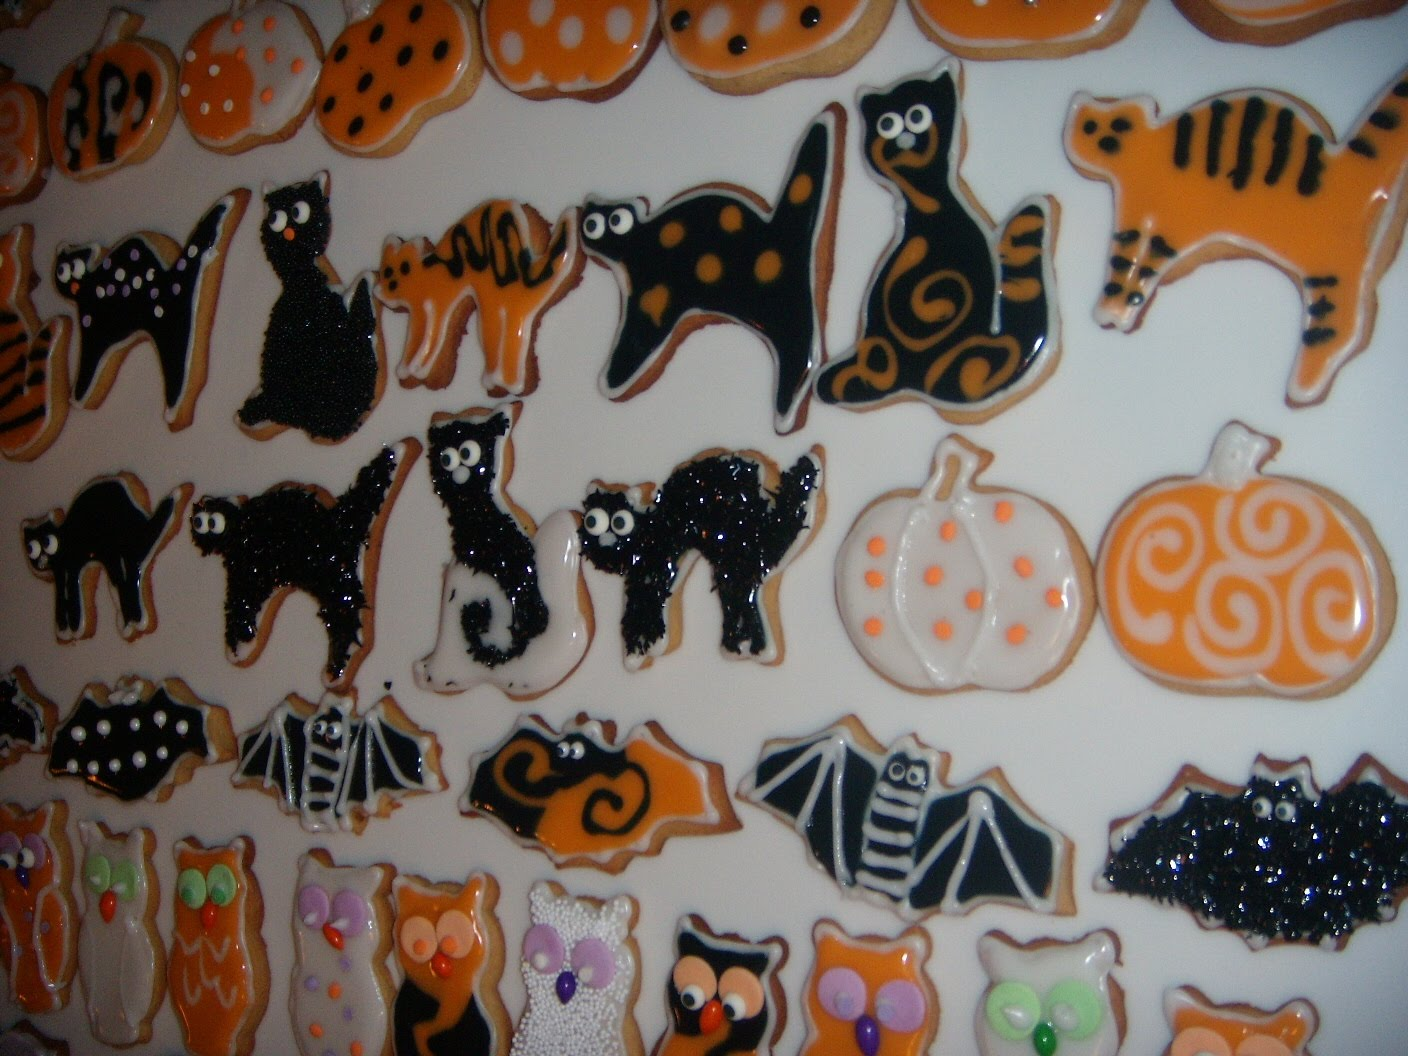 Food Art Party: Cookie Decorating Ideas